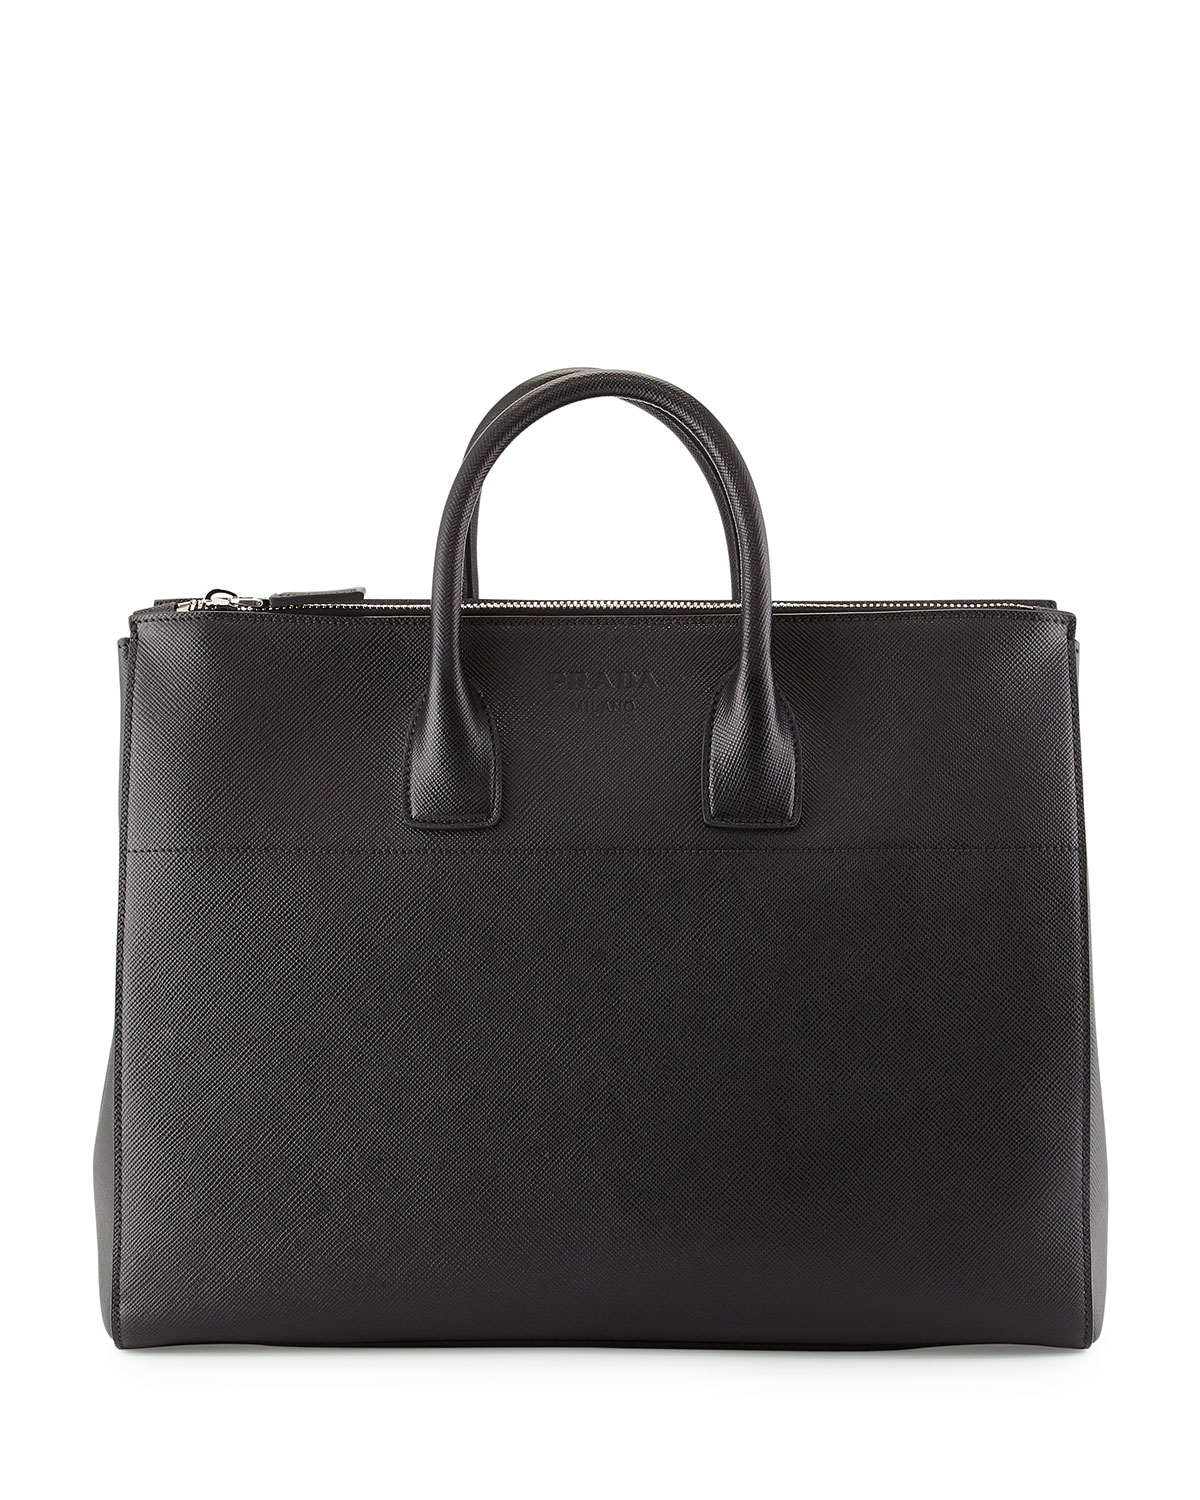 Prada Men's Saffiano Zip-top Shopper Bag in Black | Lyst